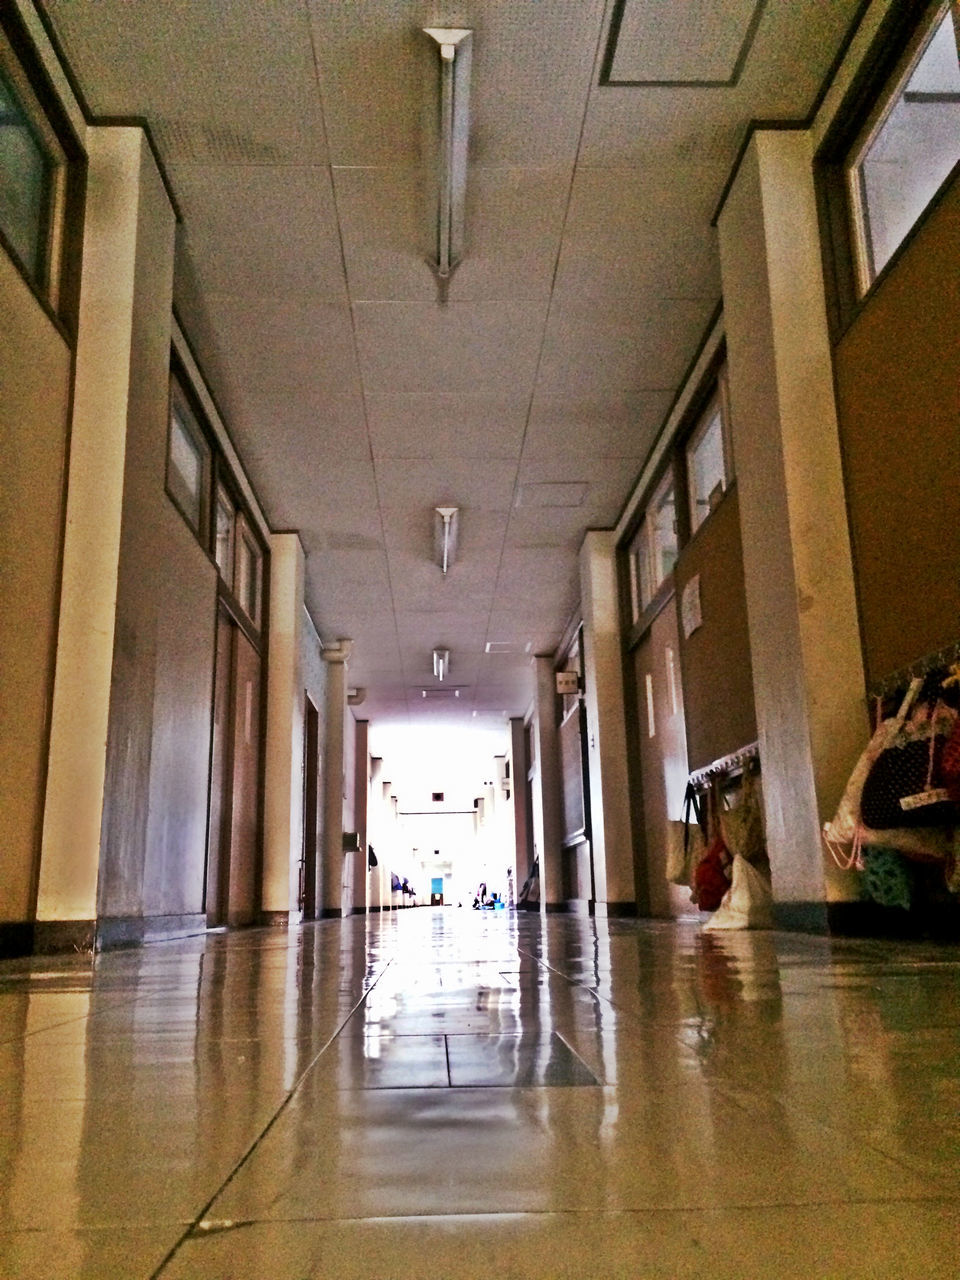 indoors, flooring, corridor, architecture, built structure, day, no people, hospital